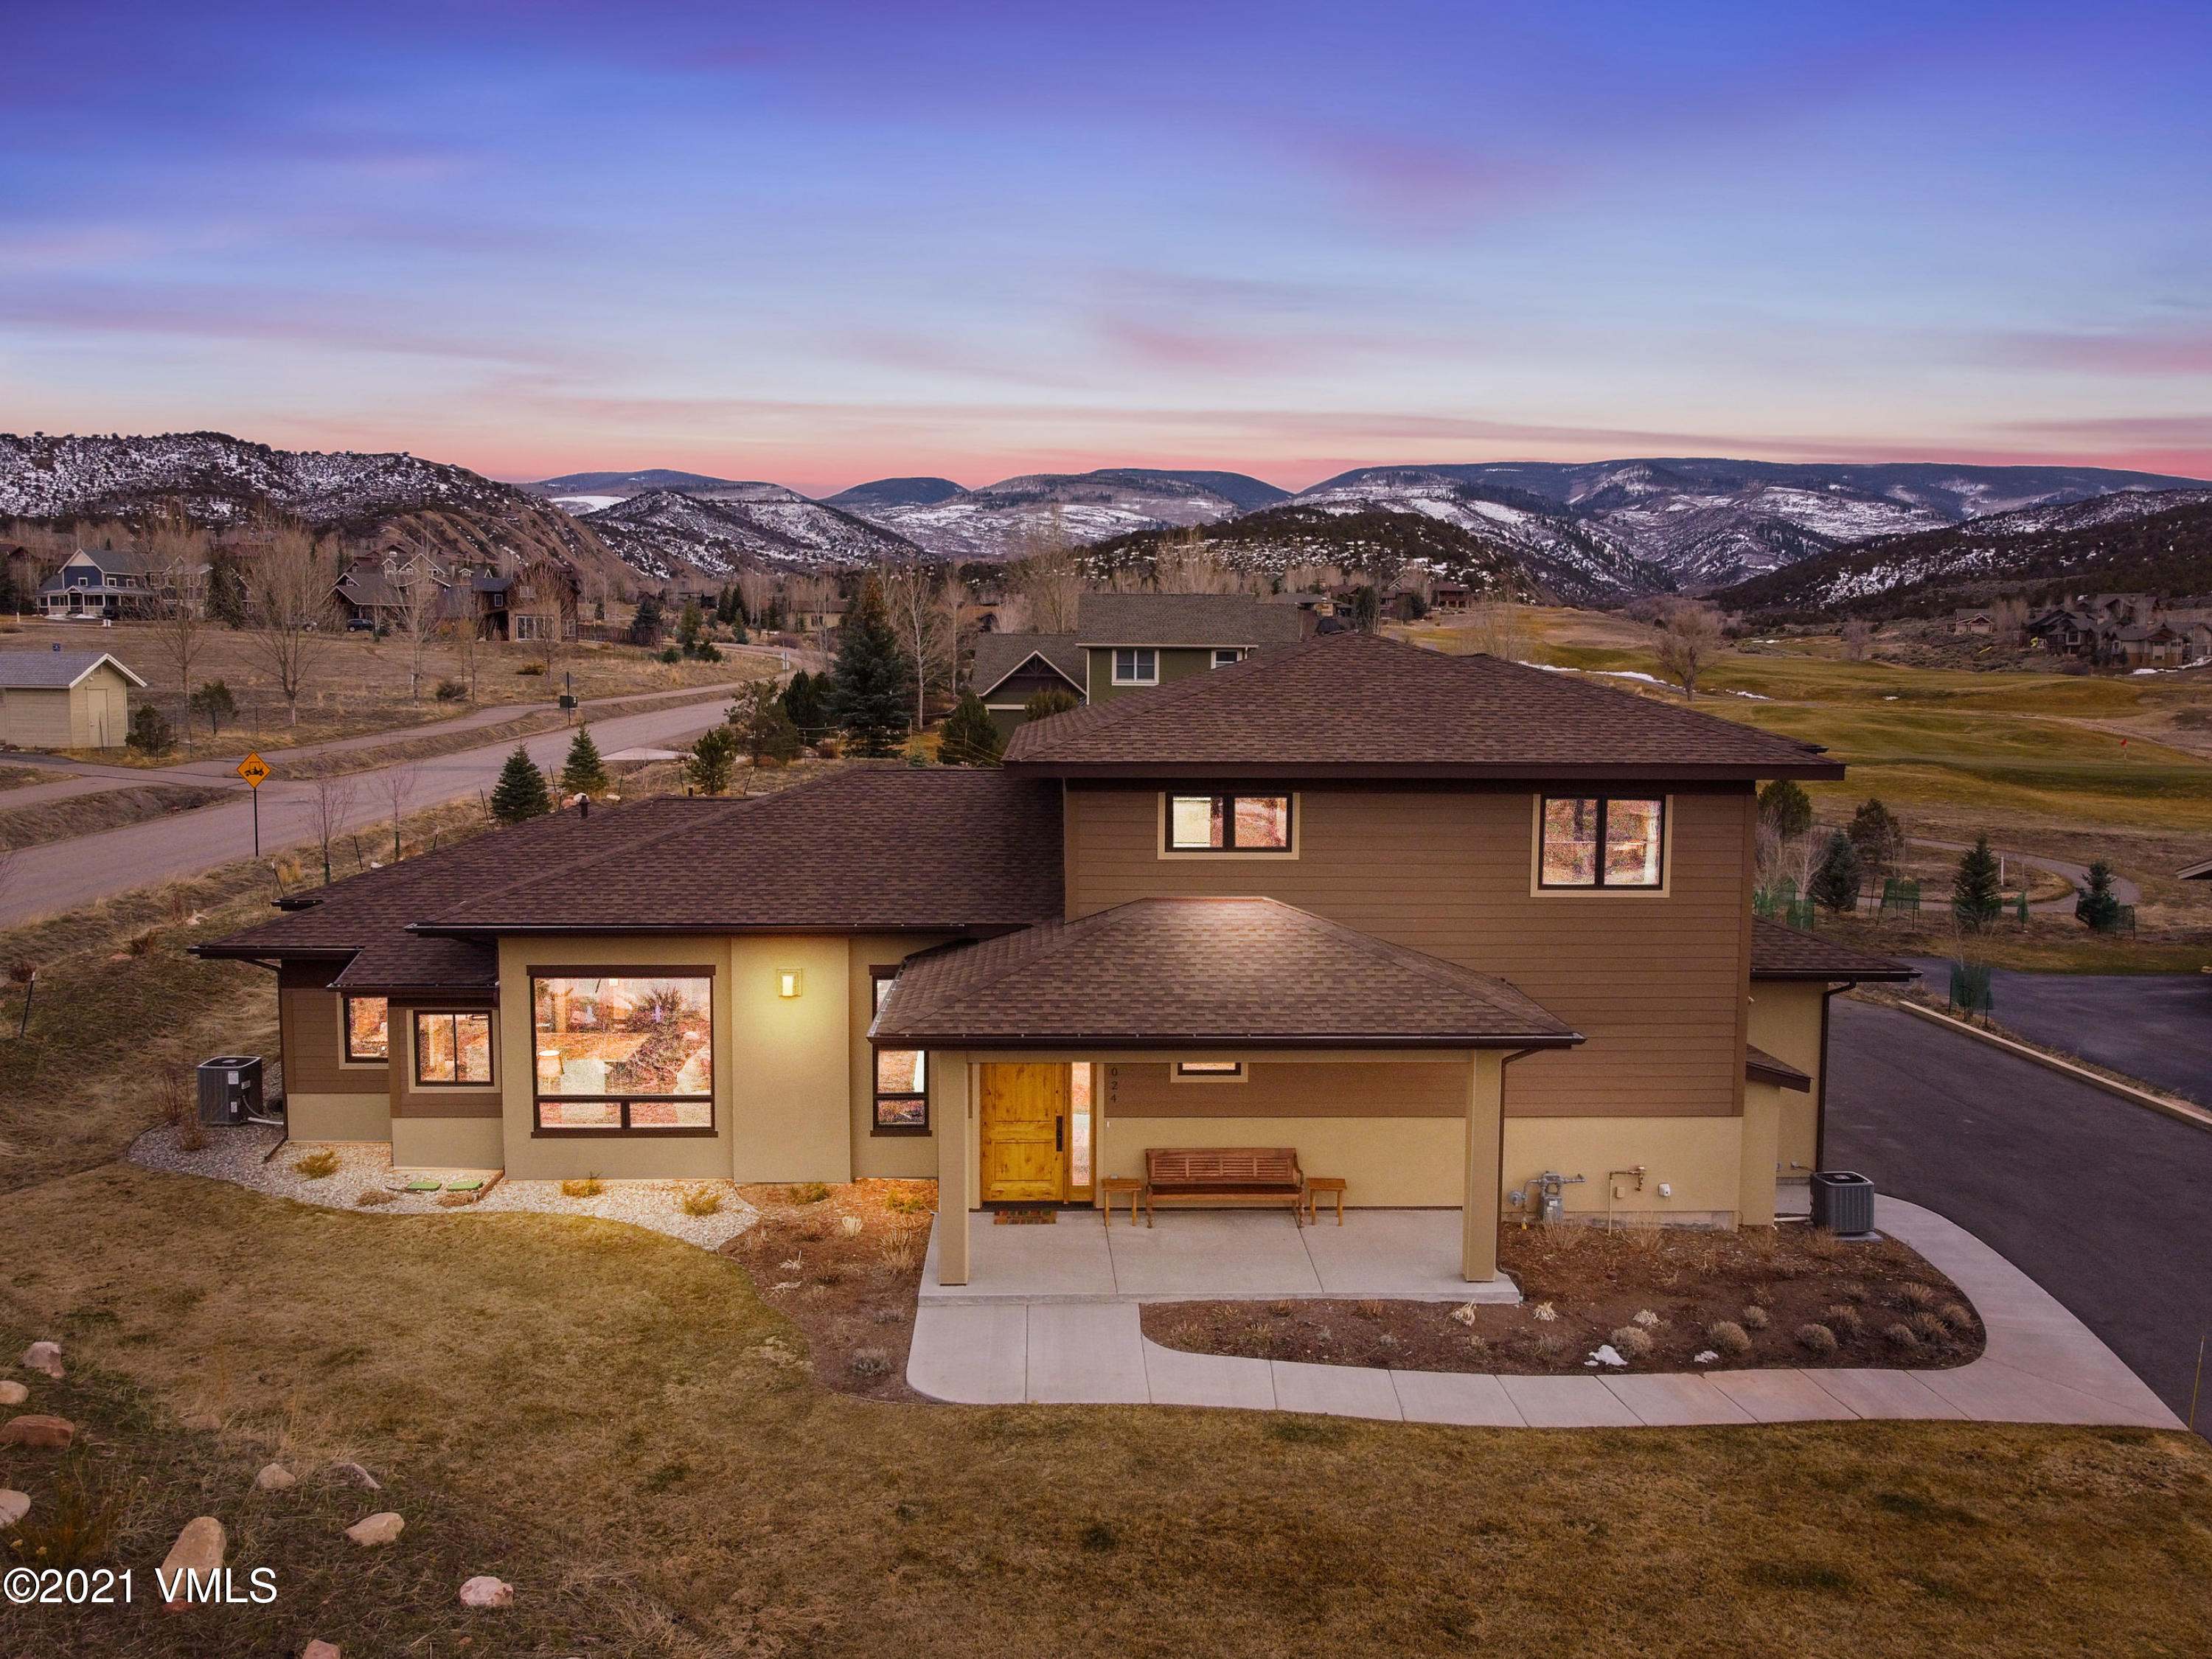 Escape to this custom luxury residence built in 2019, offering vast views of Castle Peak & Sawatch Range.  The modern setting offers sophisticated style and exquisite finishes throughout.  Home has 5 bedrooms, 5.5 bathrooms, and an open great room perfect for entertaining, vaulted 17 ft ceilings, chef's kitchen with Bosch SS gas stove, 5 gas burners & electric oven, warming drawer, beautiful L shaped granite & quartz counter tops with two sinks,  Stunning 55'' Gas Fireplace.  Bose Surround sound system throughout interior and exterior, large doorways and hallways, large covered front porch, patio slider opens to expansive South facing courtyard offering the spectacular setting of the 13th and 14th fairways of the Arnold Palmer signature design course, courtyard plumbed with natural gas ready for the grill, and 220V power for the hot tub.  Step from the courtyard into a private access to the Master with 5 piece ensuite, radiant flooring, rain shower, closet with custom built in storage, and a tiled sun room attached to master.  Two more generous bedrooms with ensuite on Main level. Second level has an additional Bedroom with en suite and expansive mountain views. Generous upstairs living area with access to outdoor patio/deck offering breathtaking views!  Upper level Lock-off 1 bed/1 bath w/ full kitchen w/eating area, living room, with access to private patio/deck with Mountain and Golf Course views.  Two 50 gallon water heaters, 2 furnaces, 2 A/C units,  2 separate garage(s) insulated,  fully finished and wired for wall heaters.  Beautiful wood and clad double pain windows throughout.  Gorgeous solid white oak floors. 10 zone sprinkler system.  All Bedrooms have ceiling fans with light and remote. Award winning schools, walking distance or short drive to country club, parks, trails, fitness centers, movie theatre, shopping and dining. Eagle Ranch is an idyllic place -to live and play!